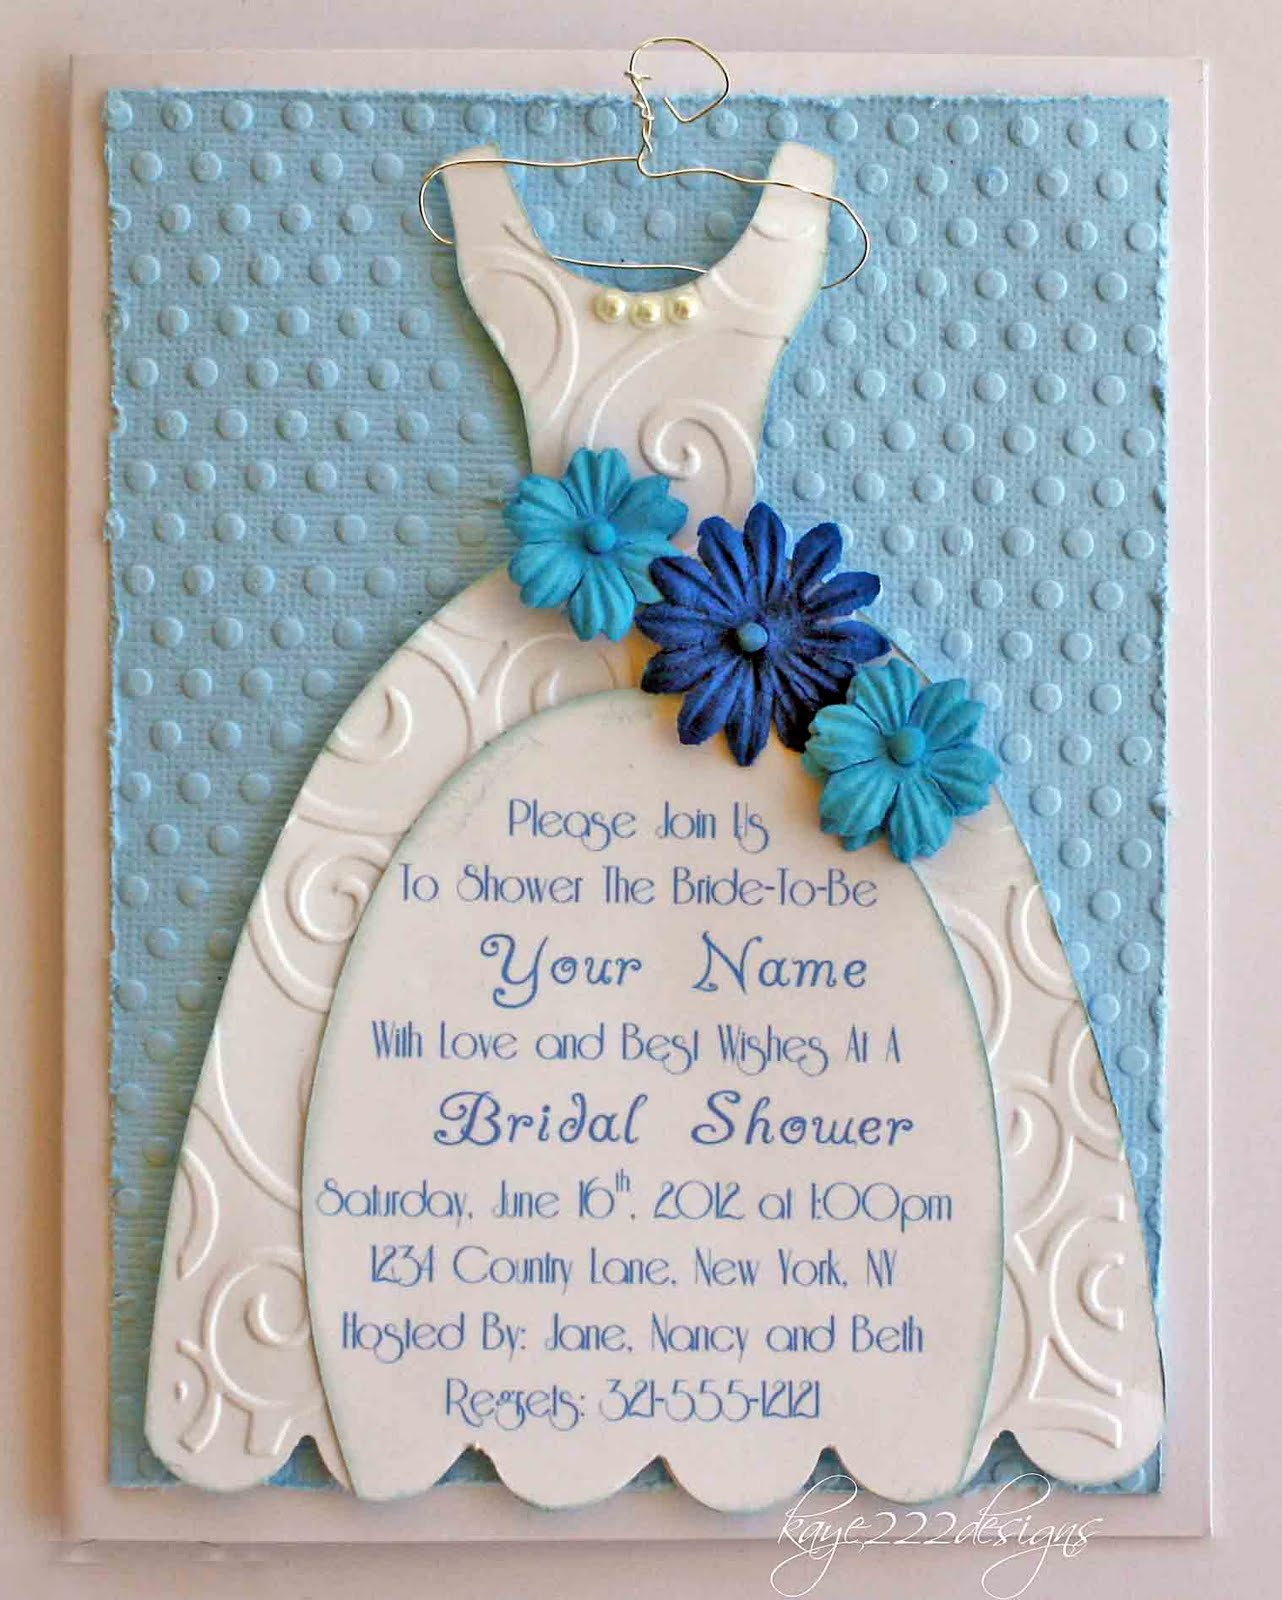 Here is a close-up shot of the embossing, flowers, pearls and hanger ...